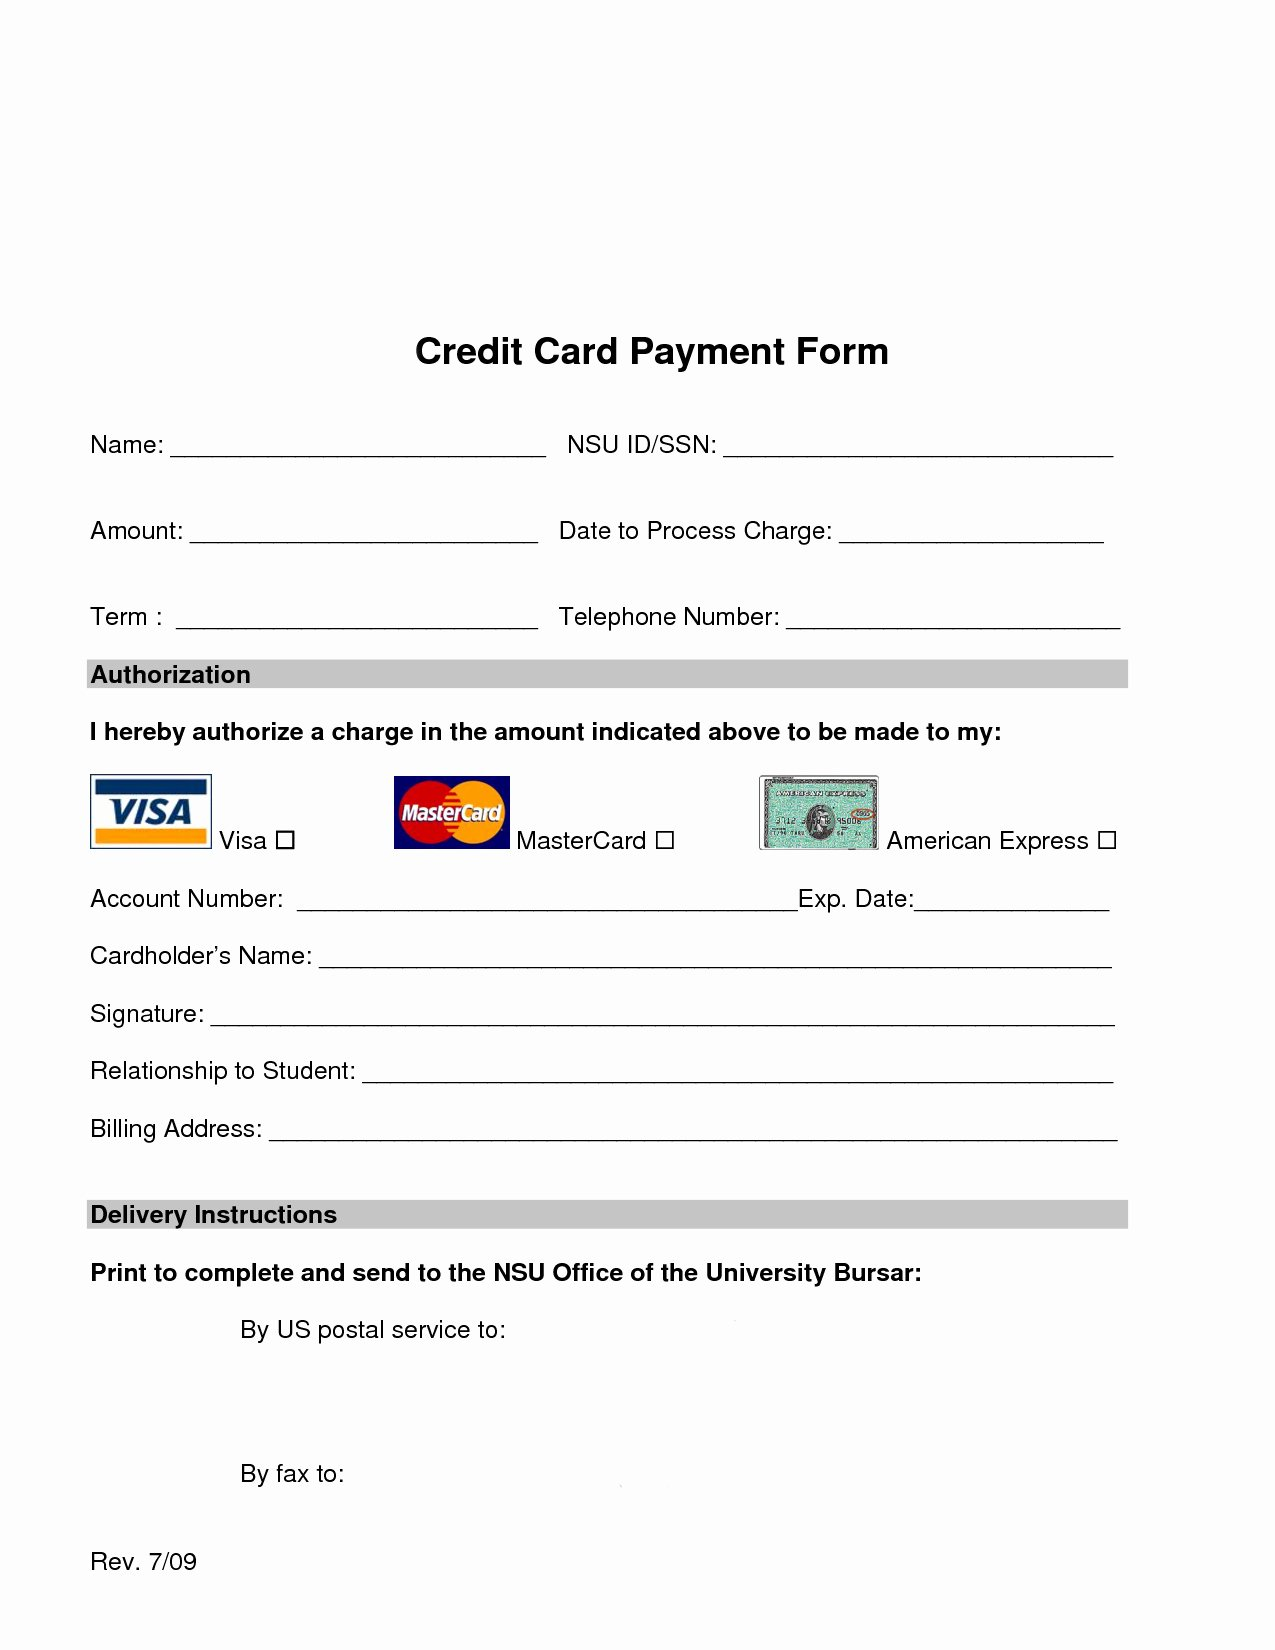 Credit Card Slip Template New Credit Card Payment form Template